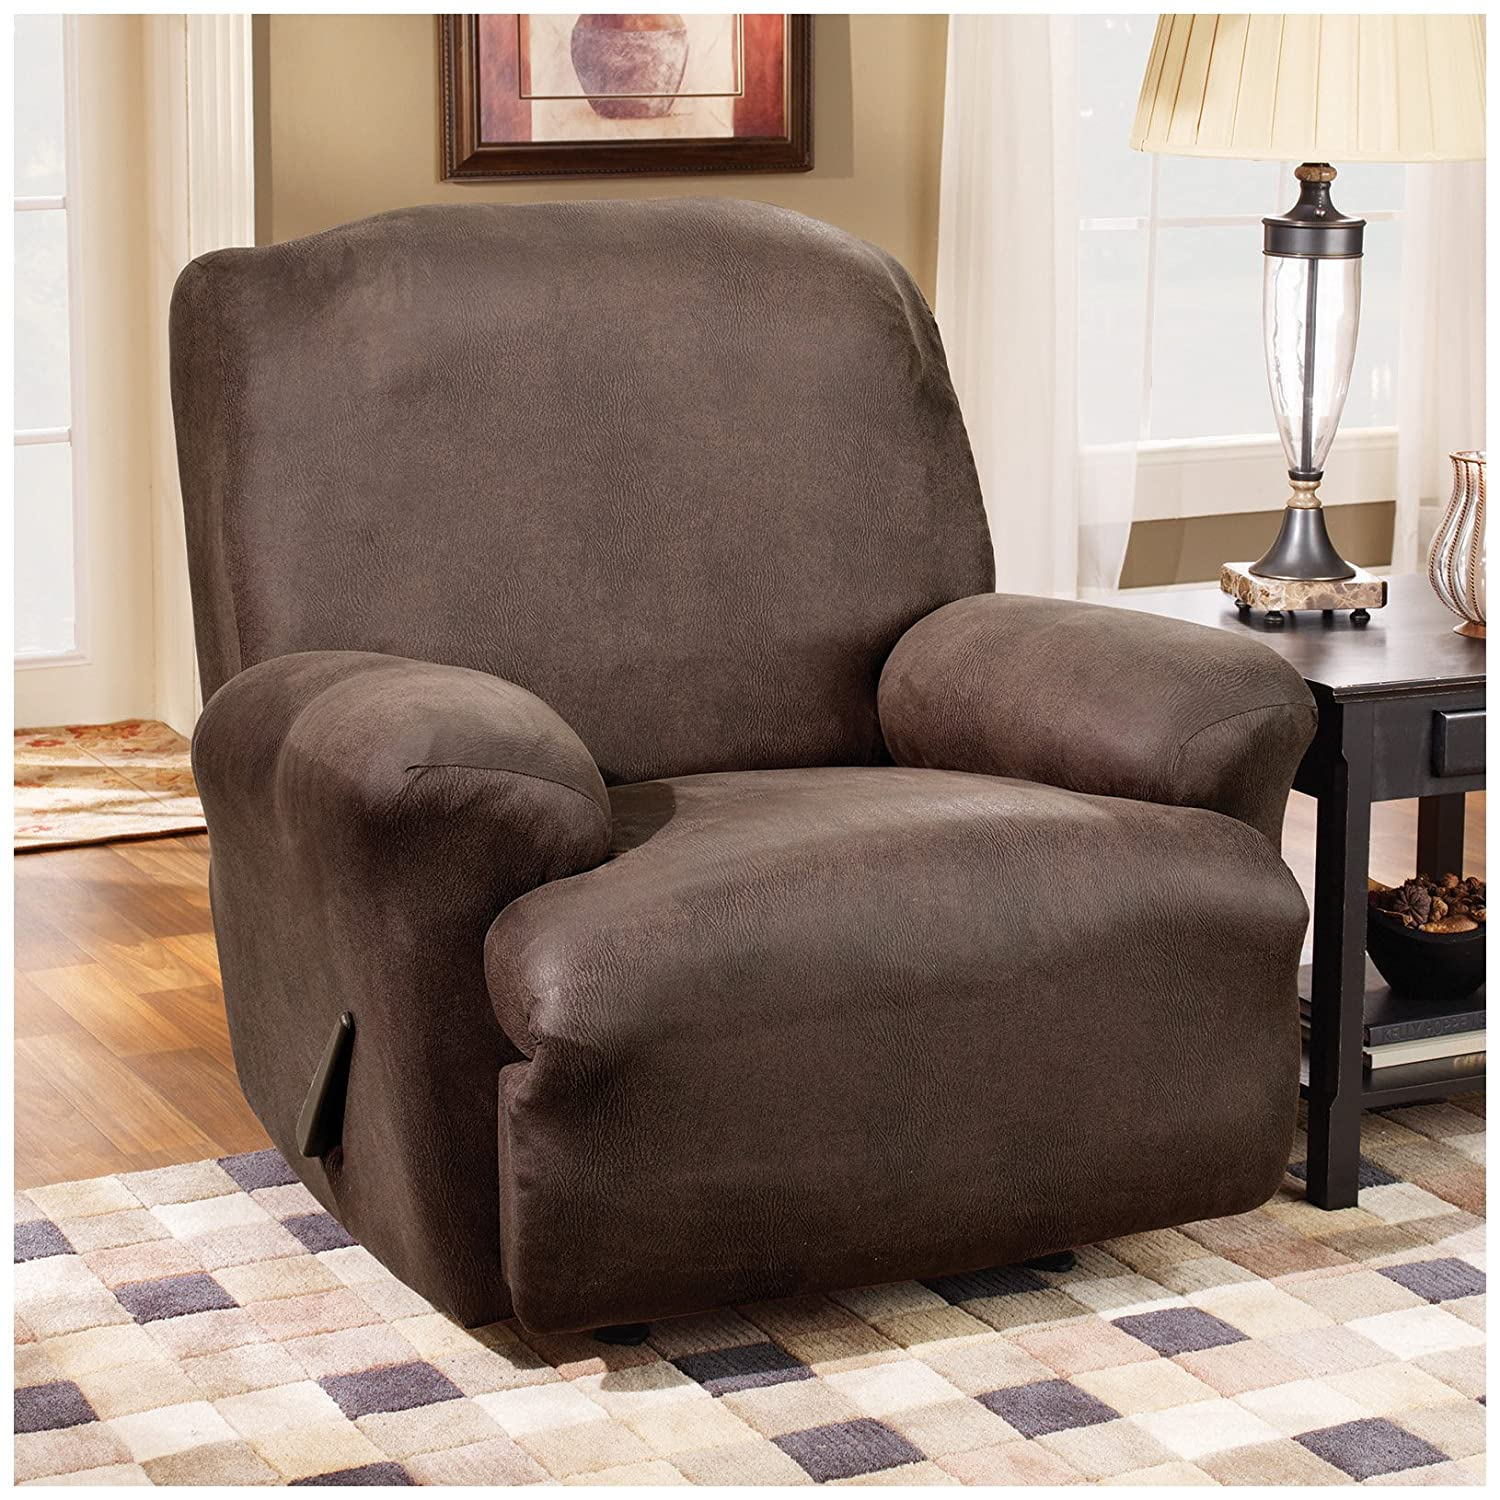 Amazon.com Sure Fit Stretch Leather 1-Piece - Recliner Slipcover - Brown (SF37162) Home u0026 Kitchen & Amazon.com: Sure Fit Stretch Leather 1-Piece - Recliner Slipcover ... islam-shia.org